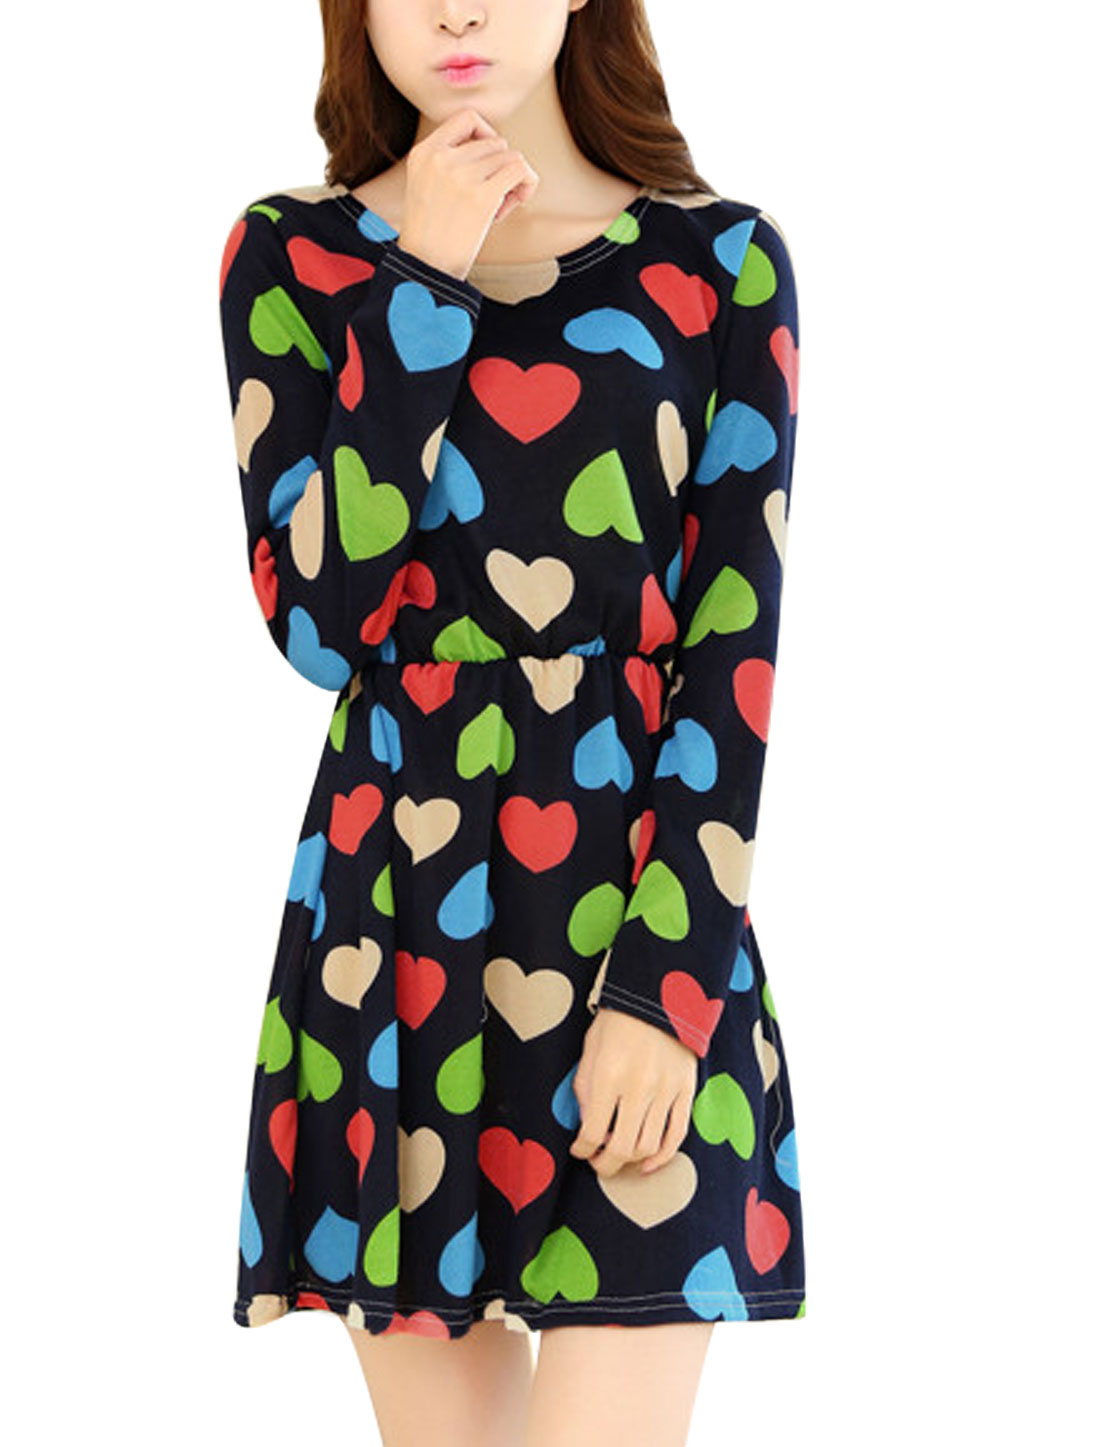 Lady Slim Fit Elastic Waist Allover Hearts Print A Line Dress Navy Blue XS